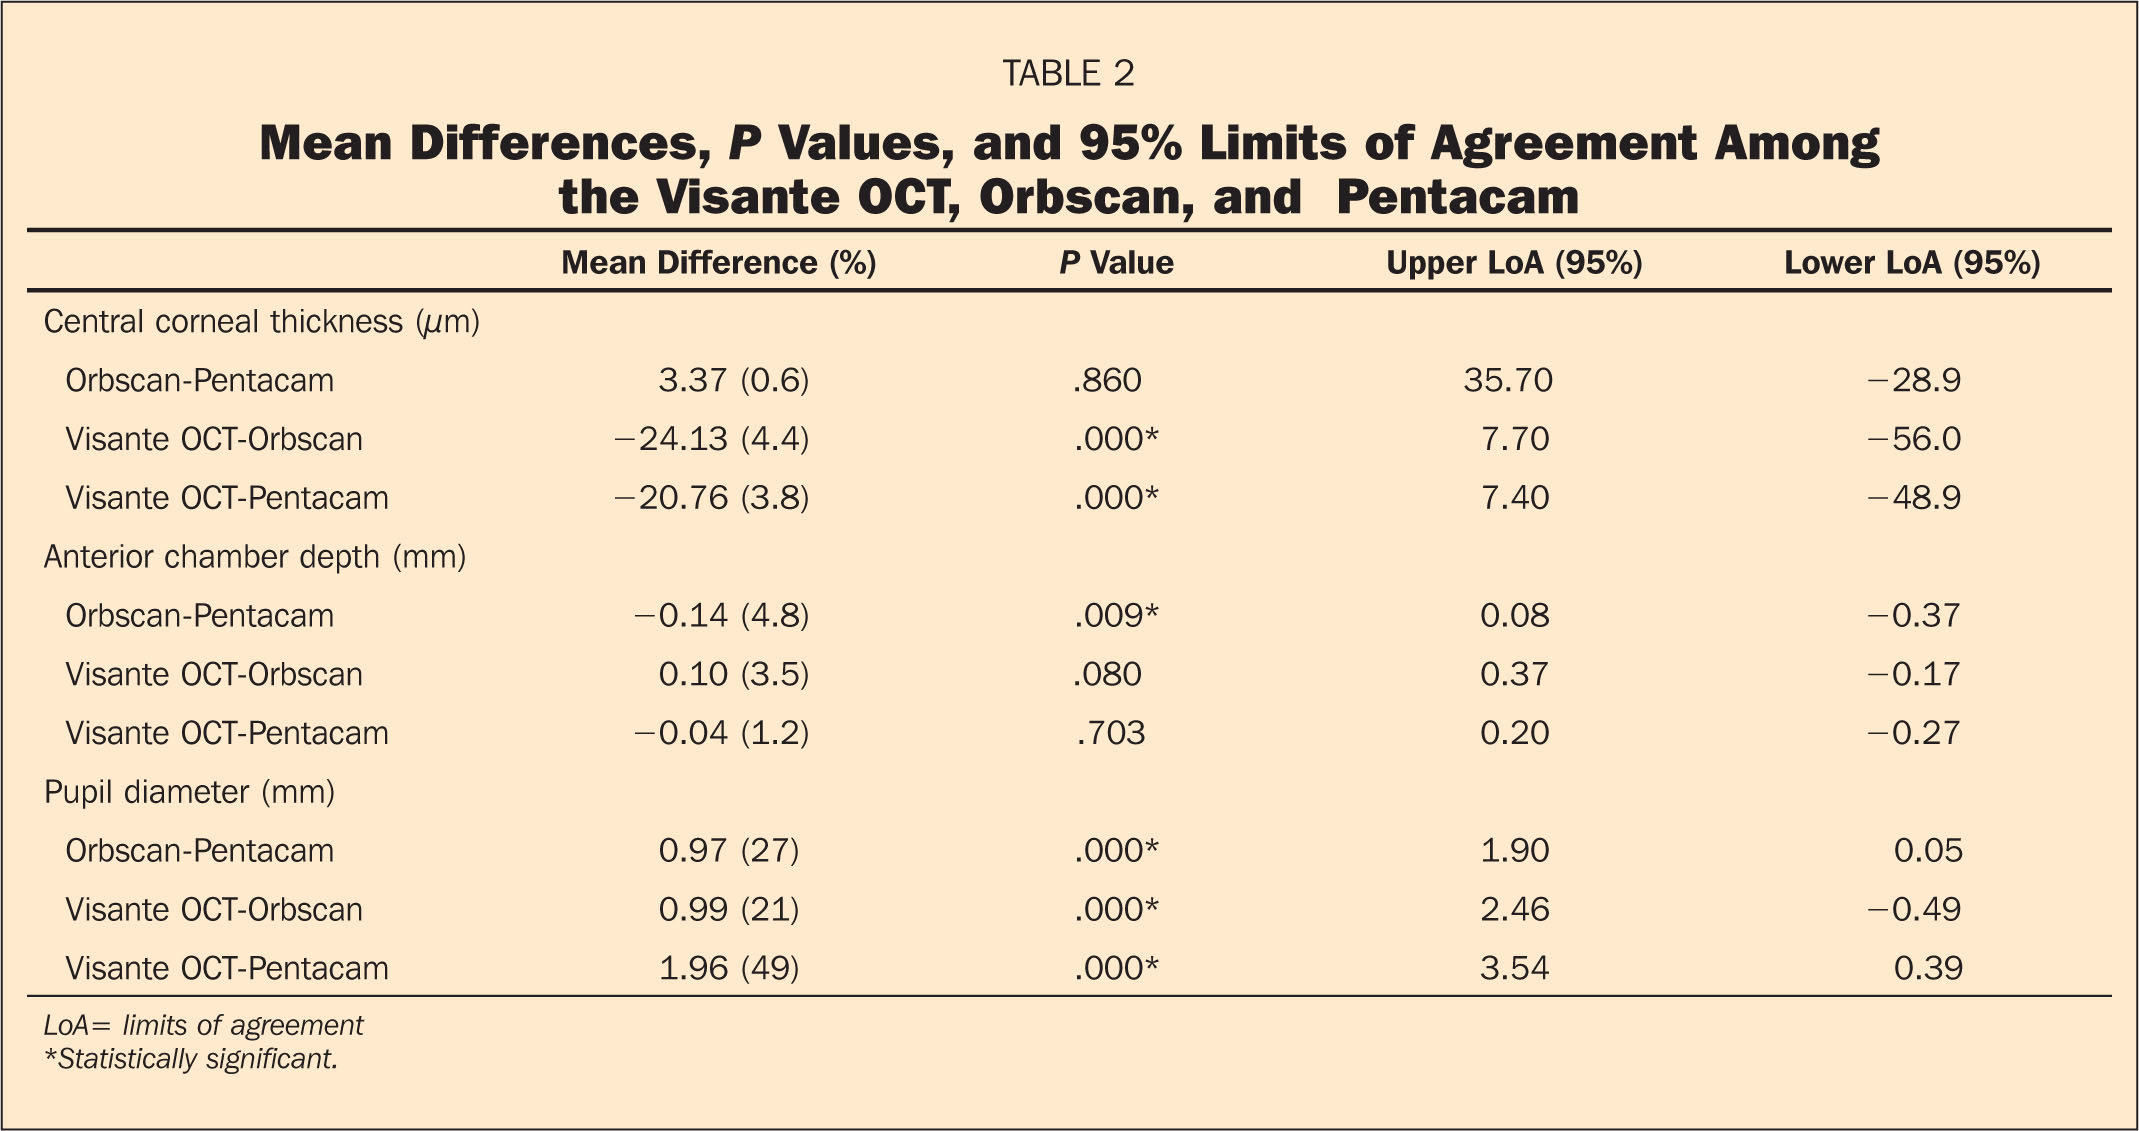 Mean Differences, P Values, and 95% Limits of Agreement Among the Visante OCT, Orbscan, and Pentacam